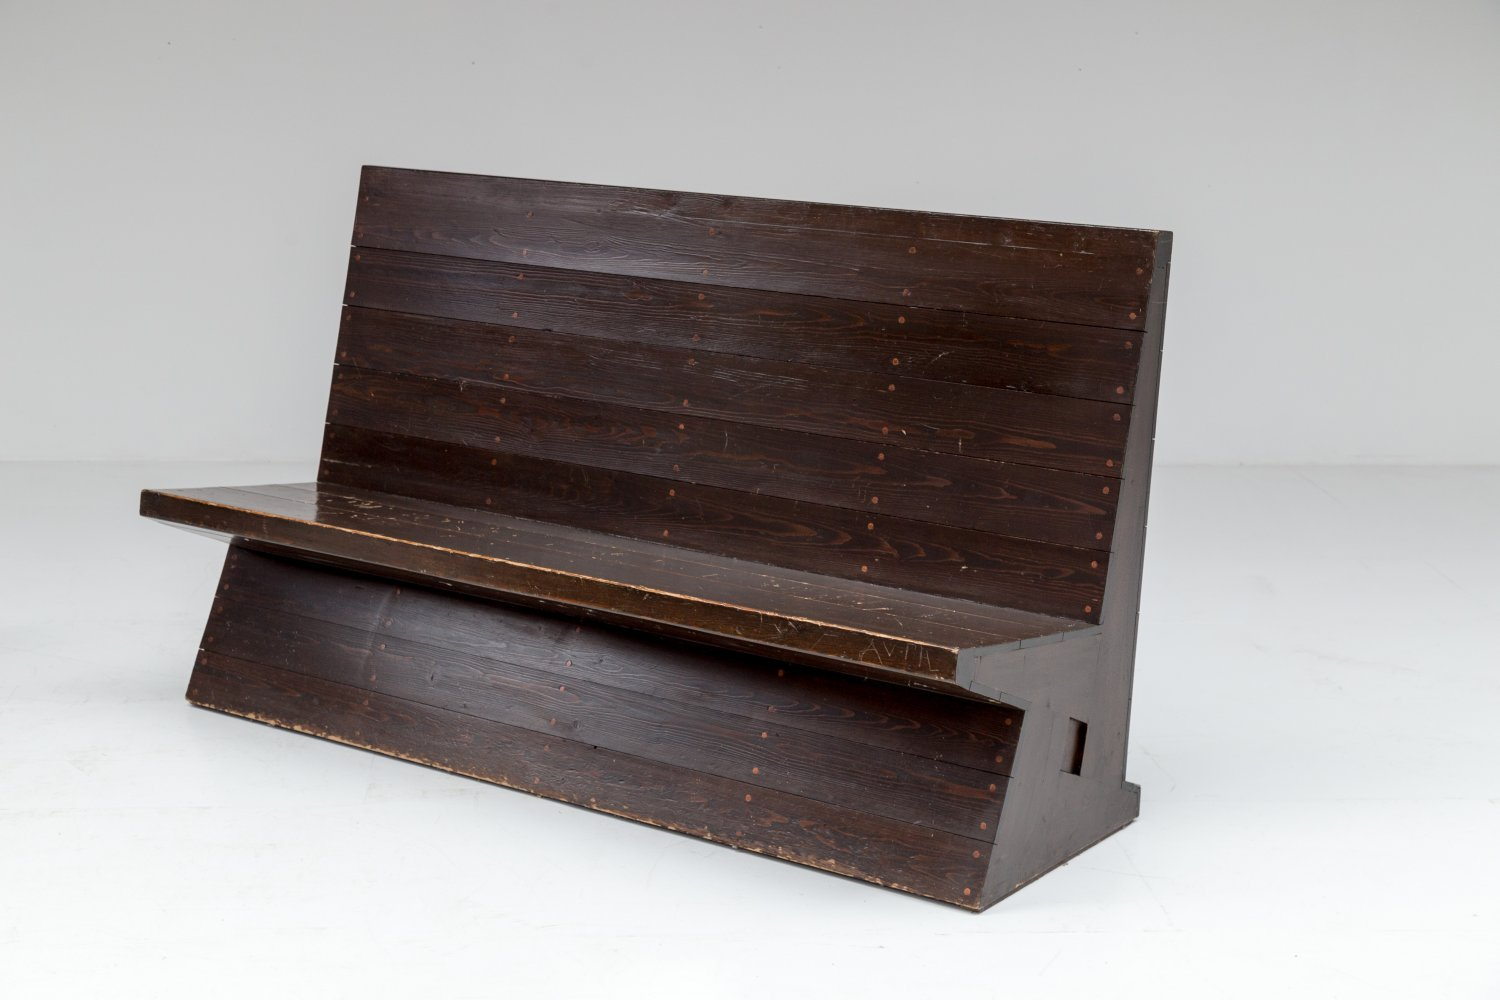 Low Bench, 1975, Dom Hans Van Der Laan.